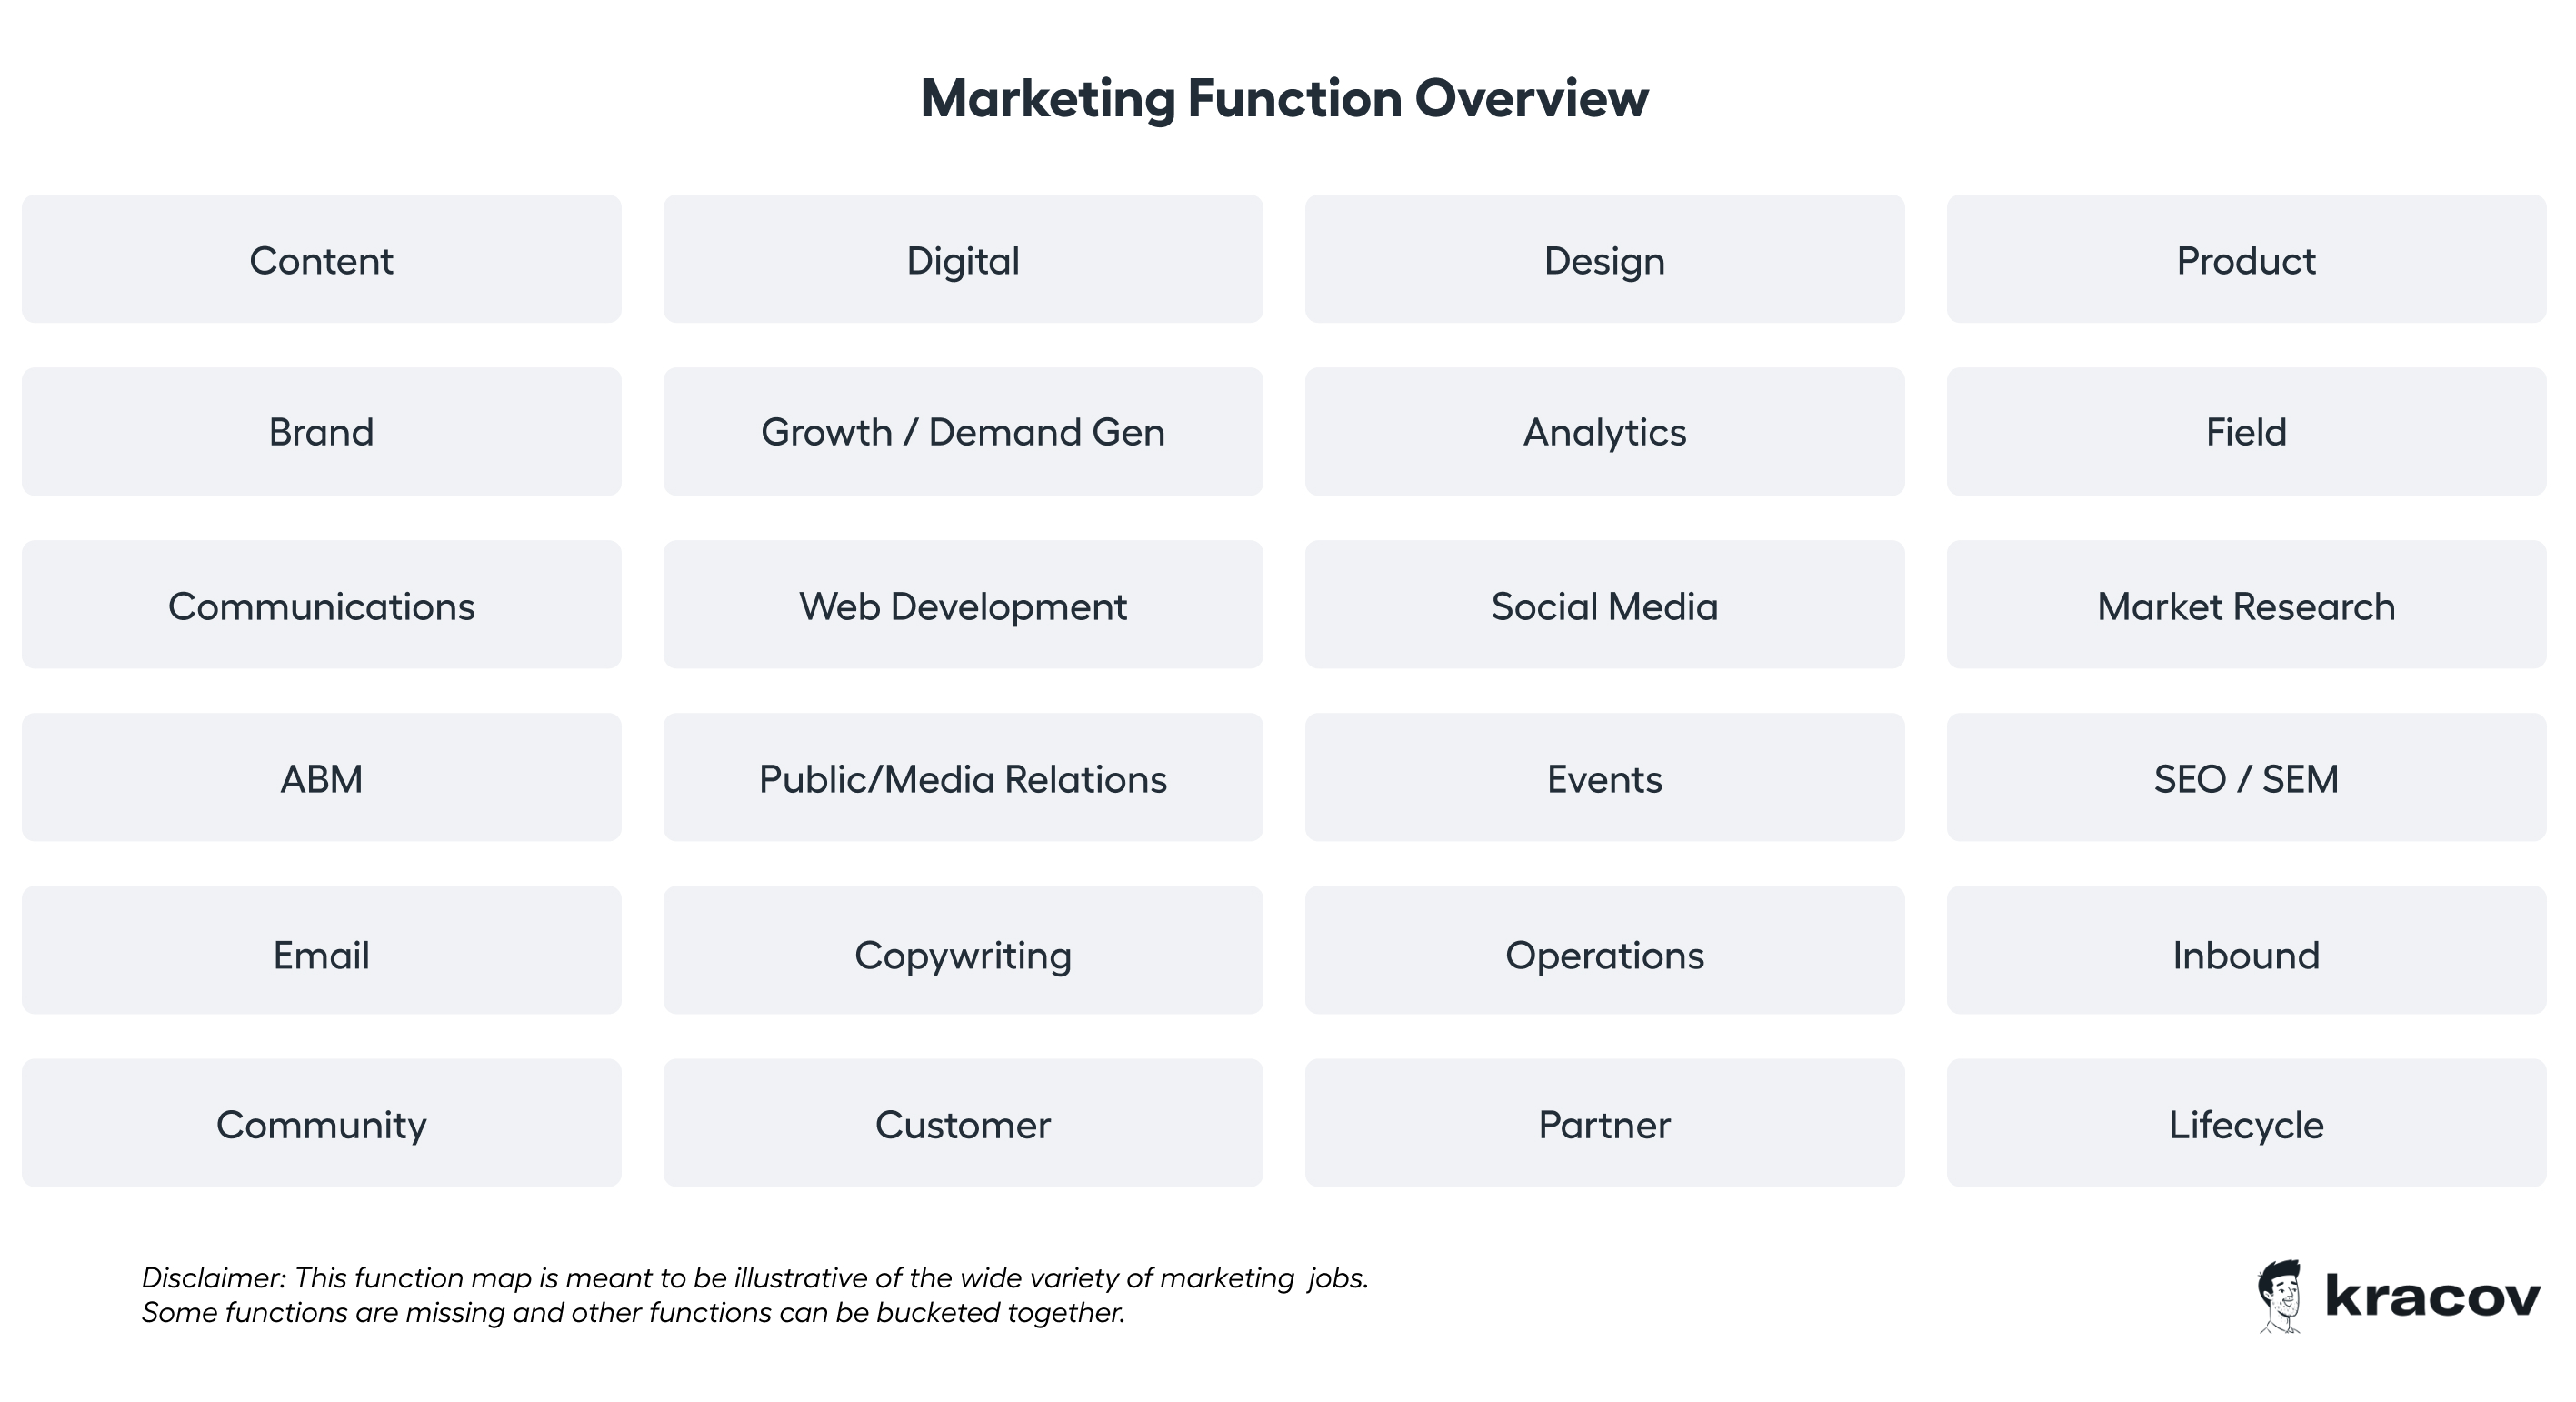 Marketing Function Overview